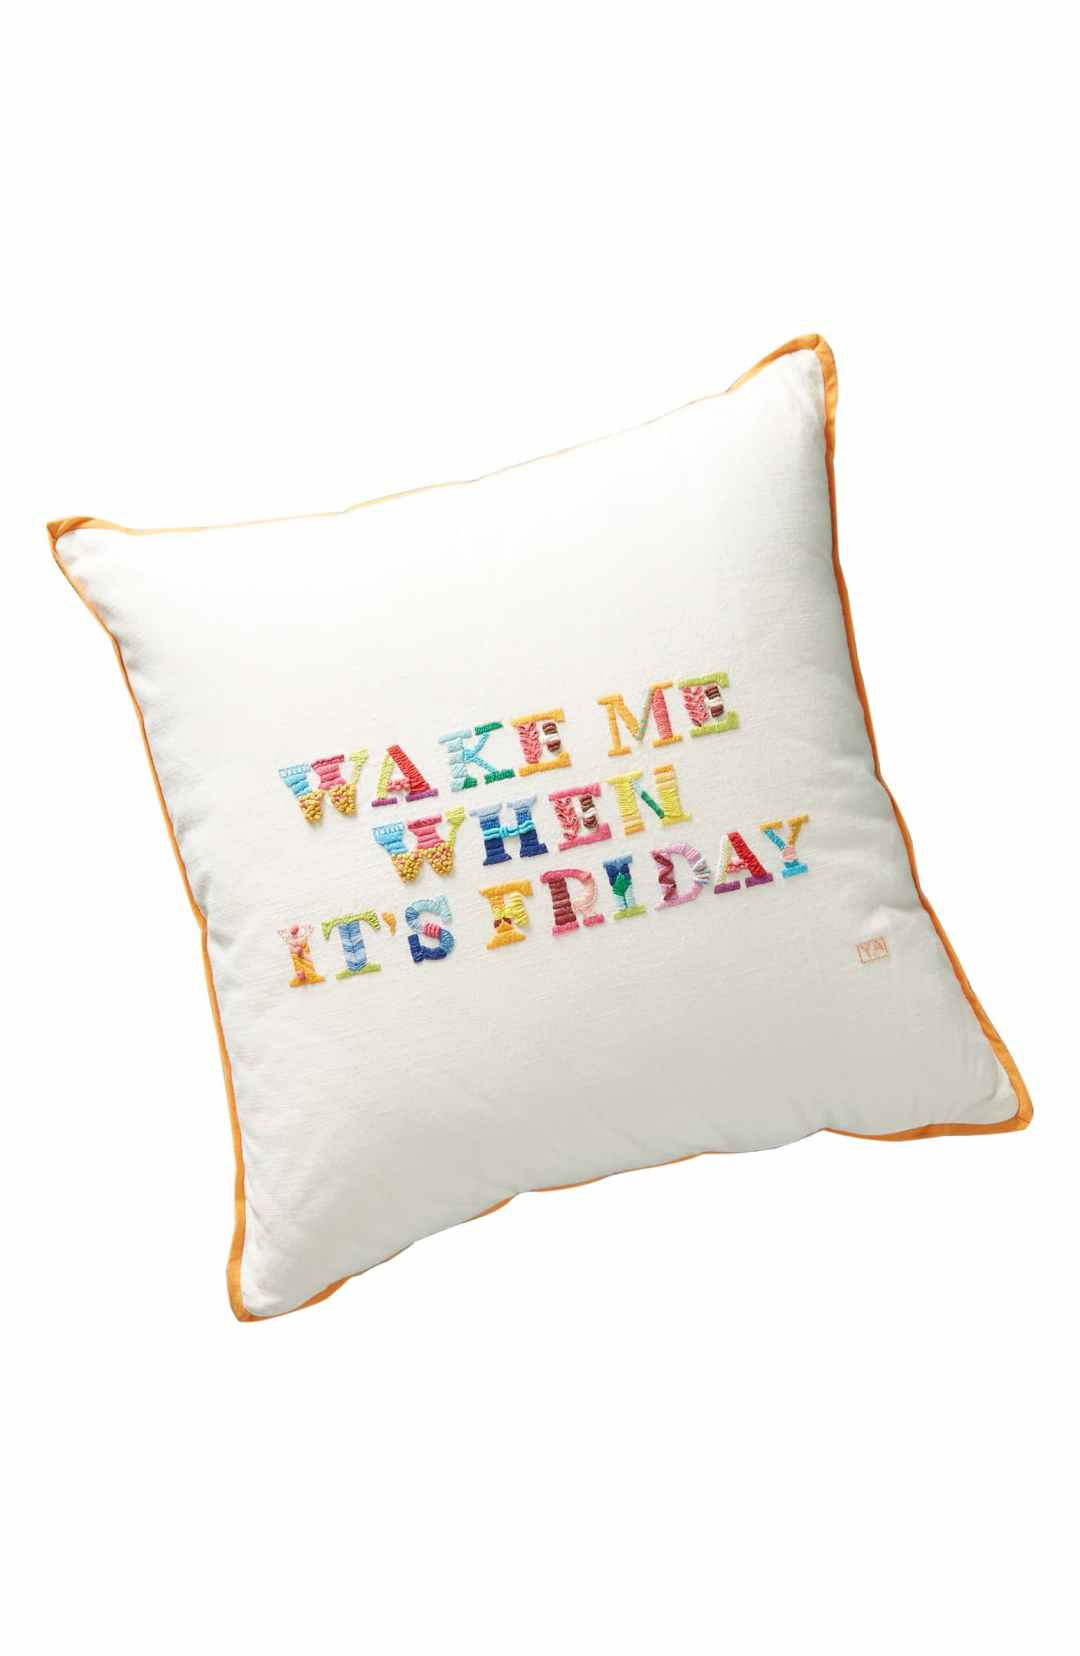 Yolanda Andres Friday Embroidered Pillow